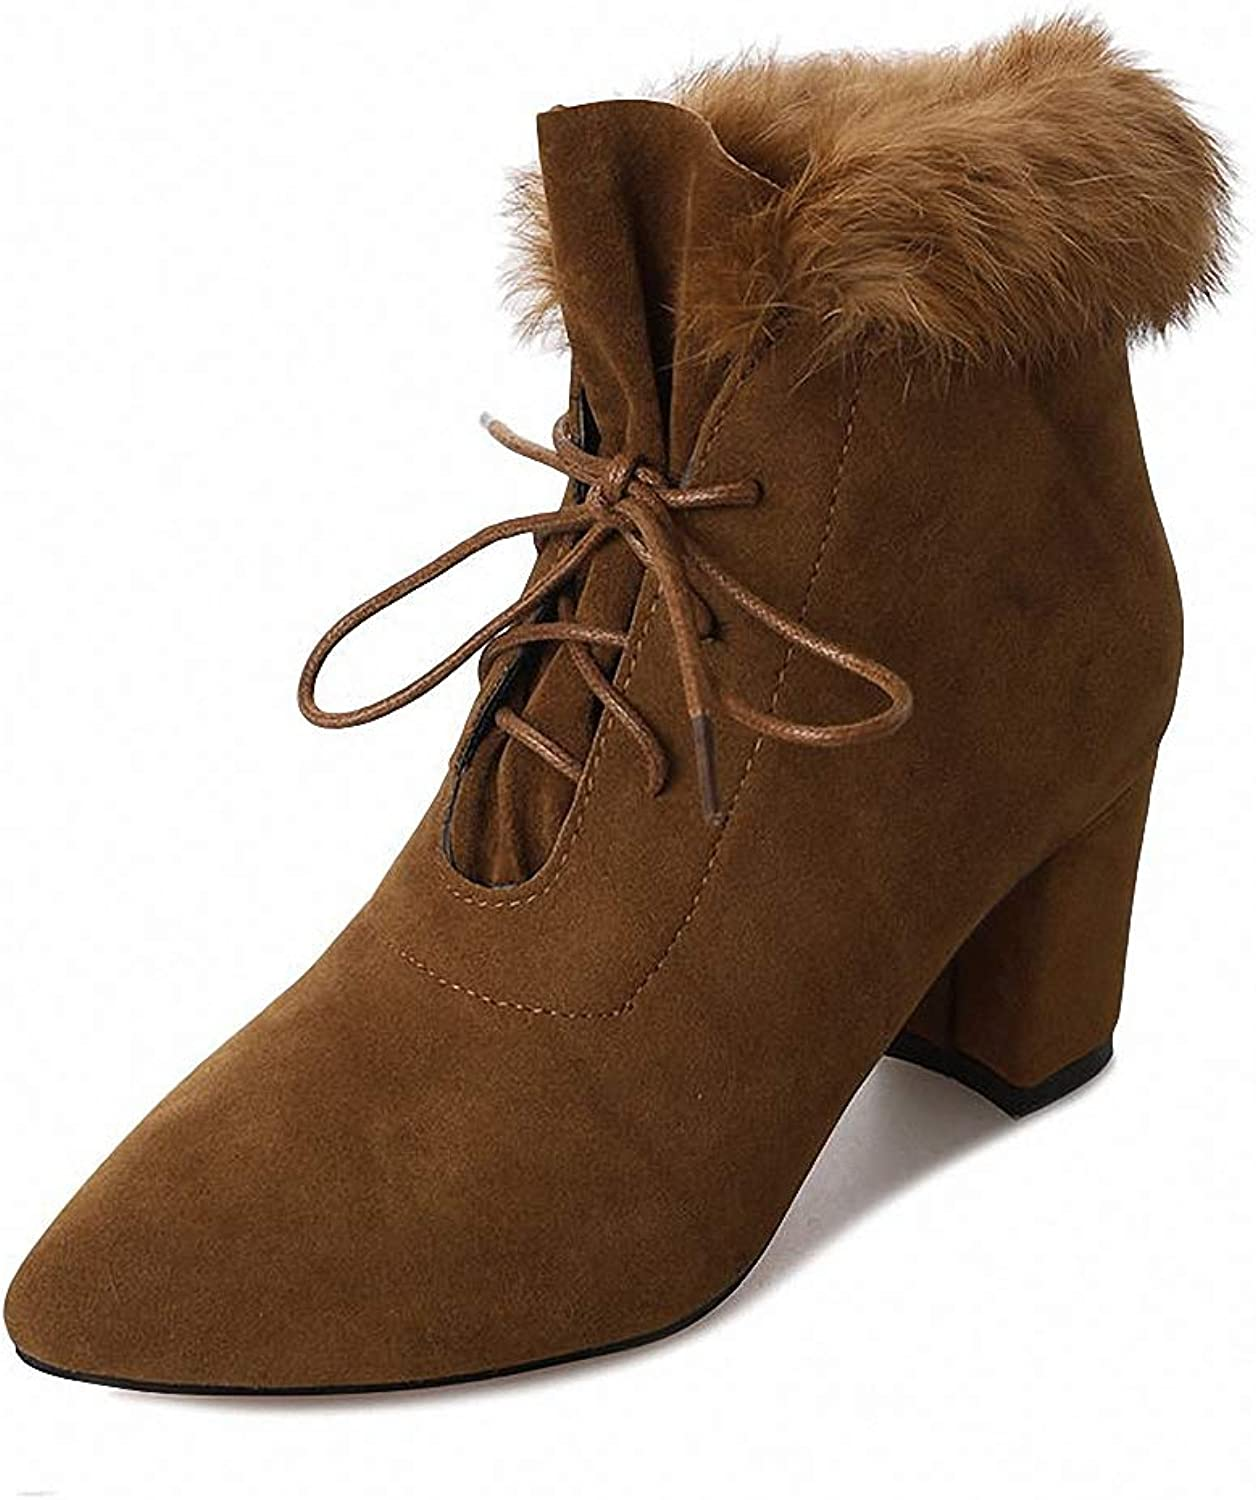 Kyle Walsh Pa Women shoes,Woman Boots Warm Winter Pointed Toe with Faux Fur High Heels